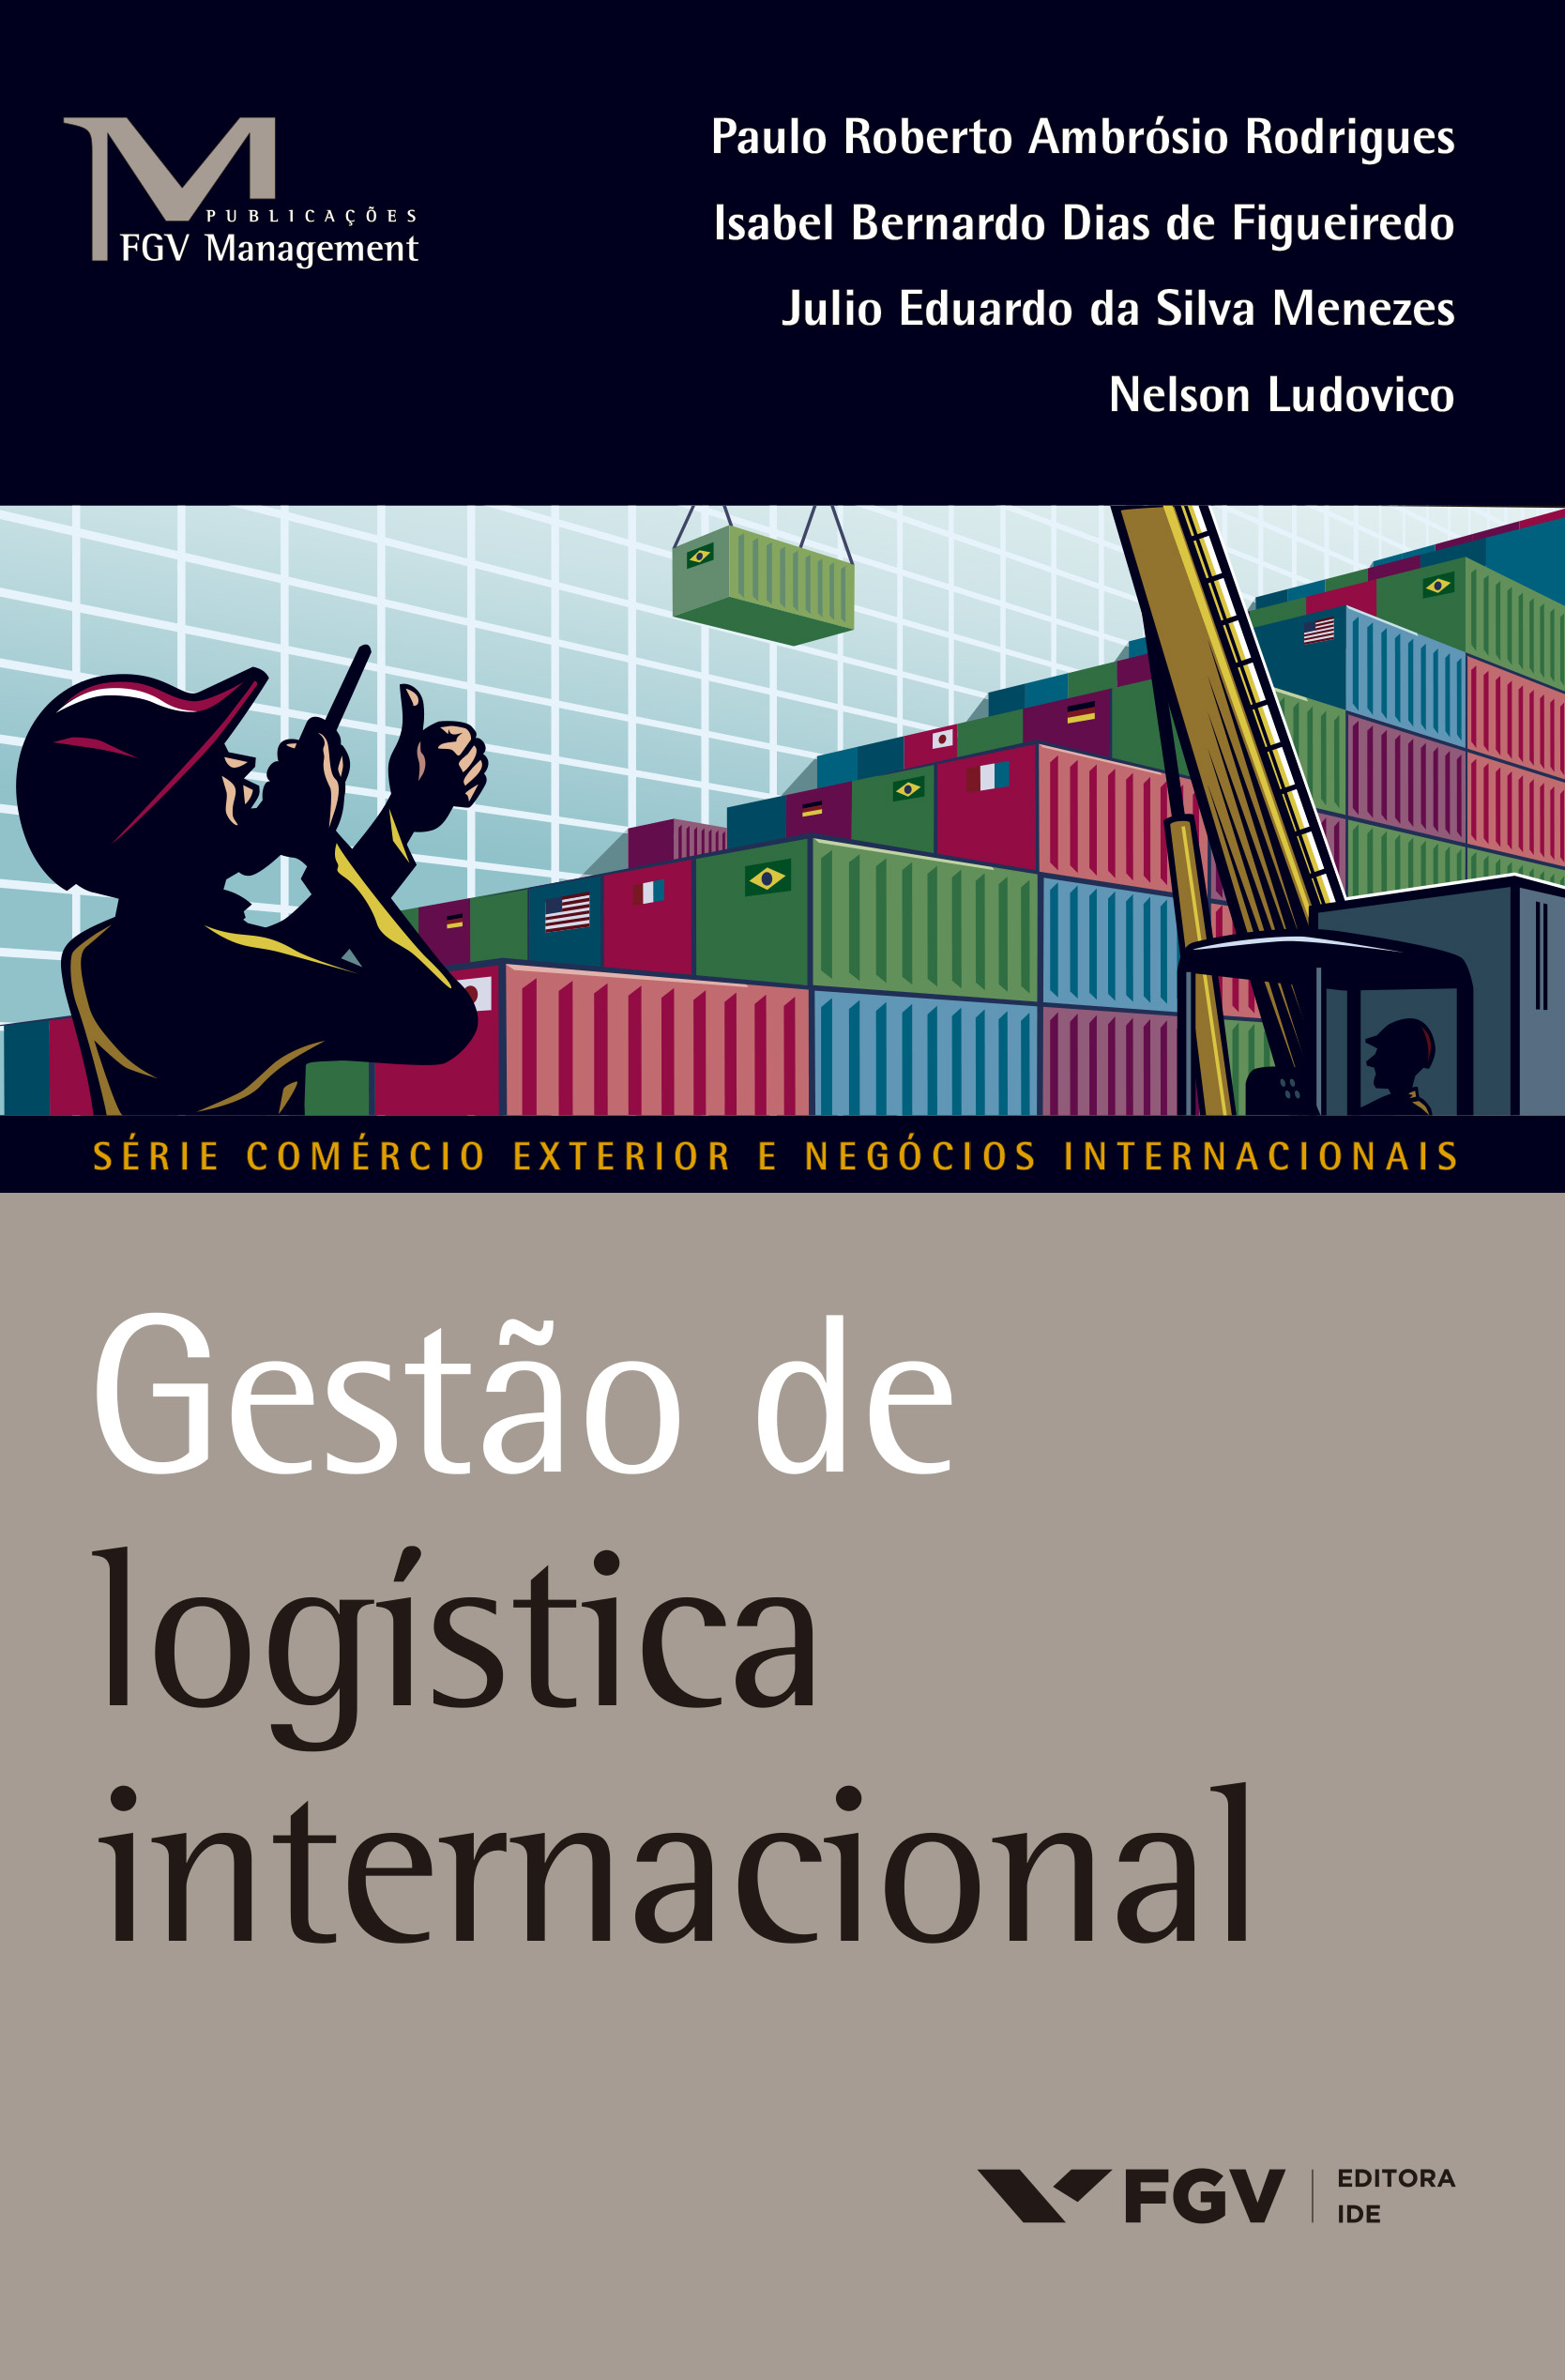 gestao de logistica internacional - rev03-P.cdr